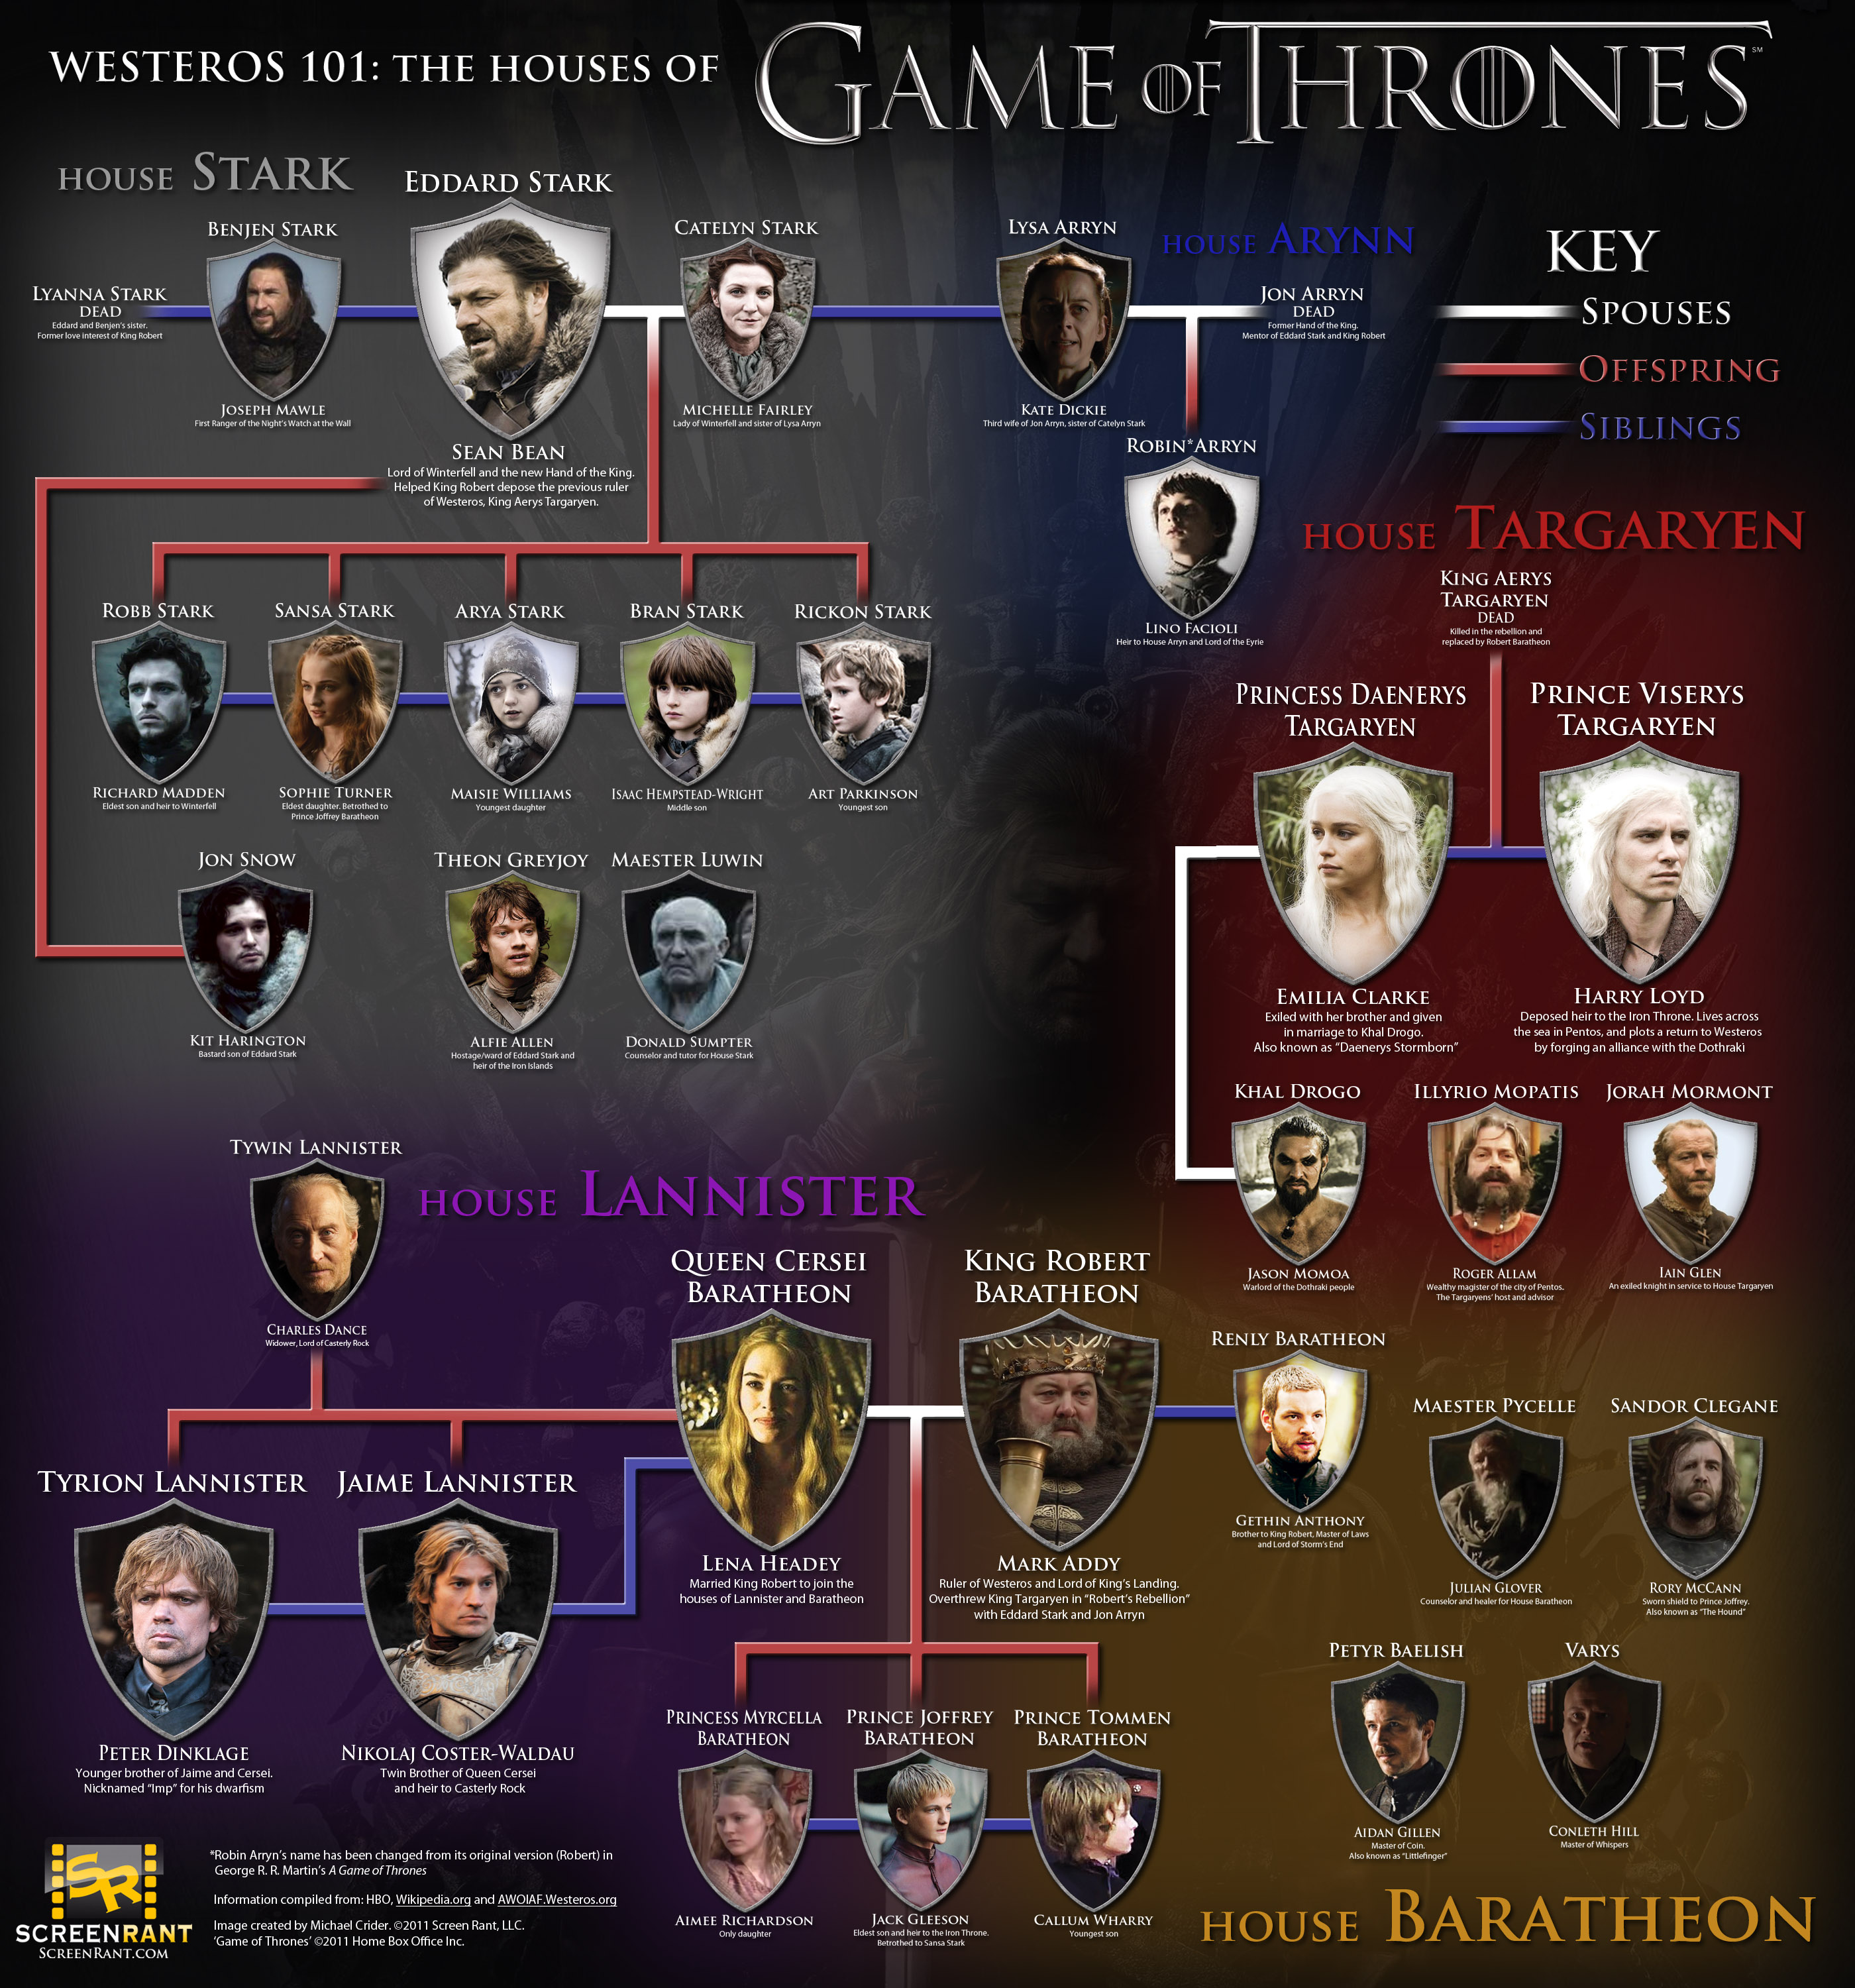 Game of Thrones Houses 101